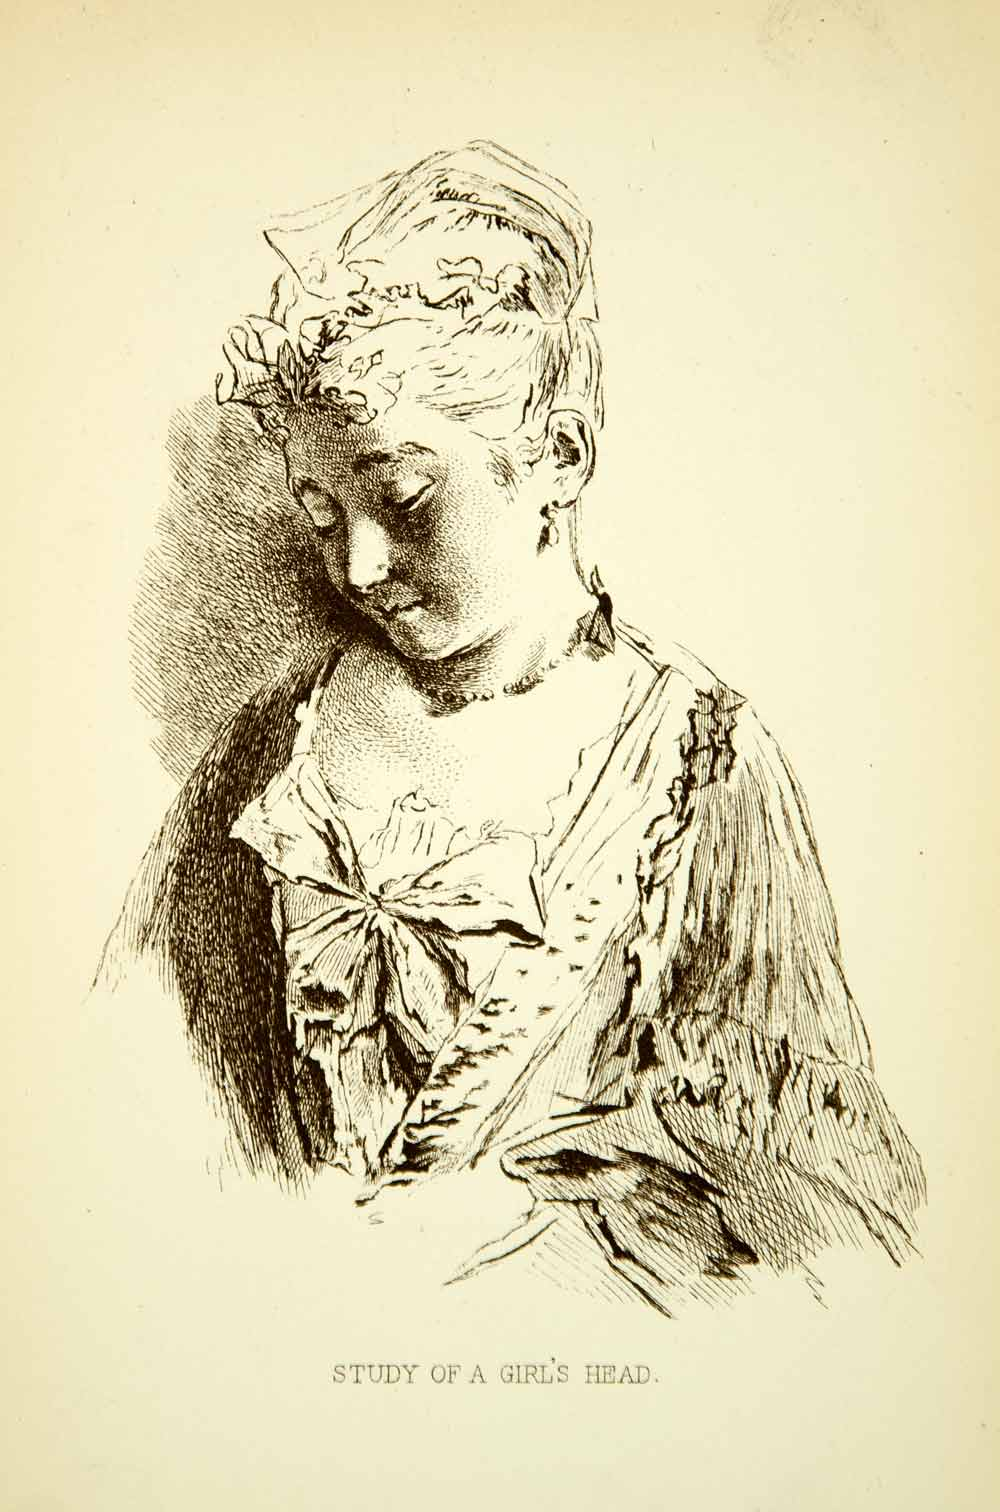 1883 Wood Engraving Jean-Antoine Watteau Baroque Art Study Girls Head XAUA1